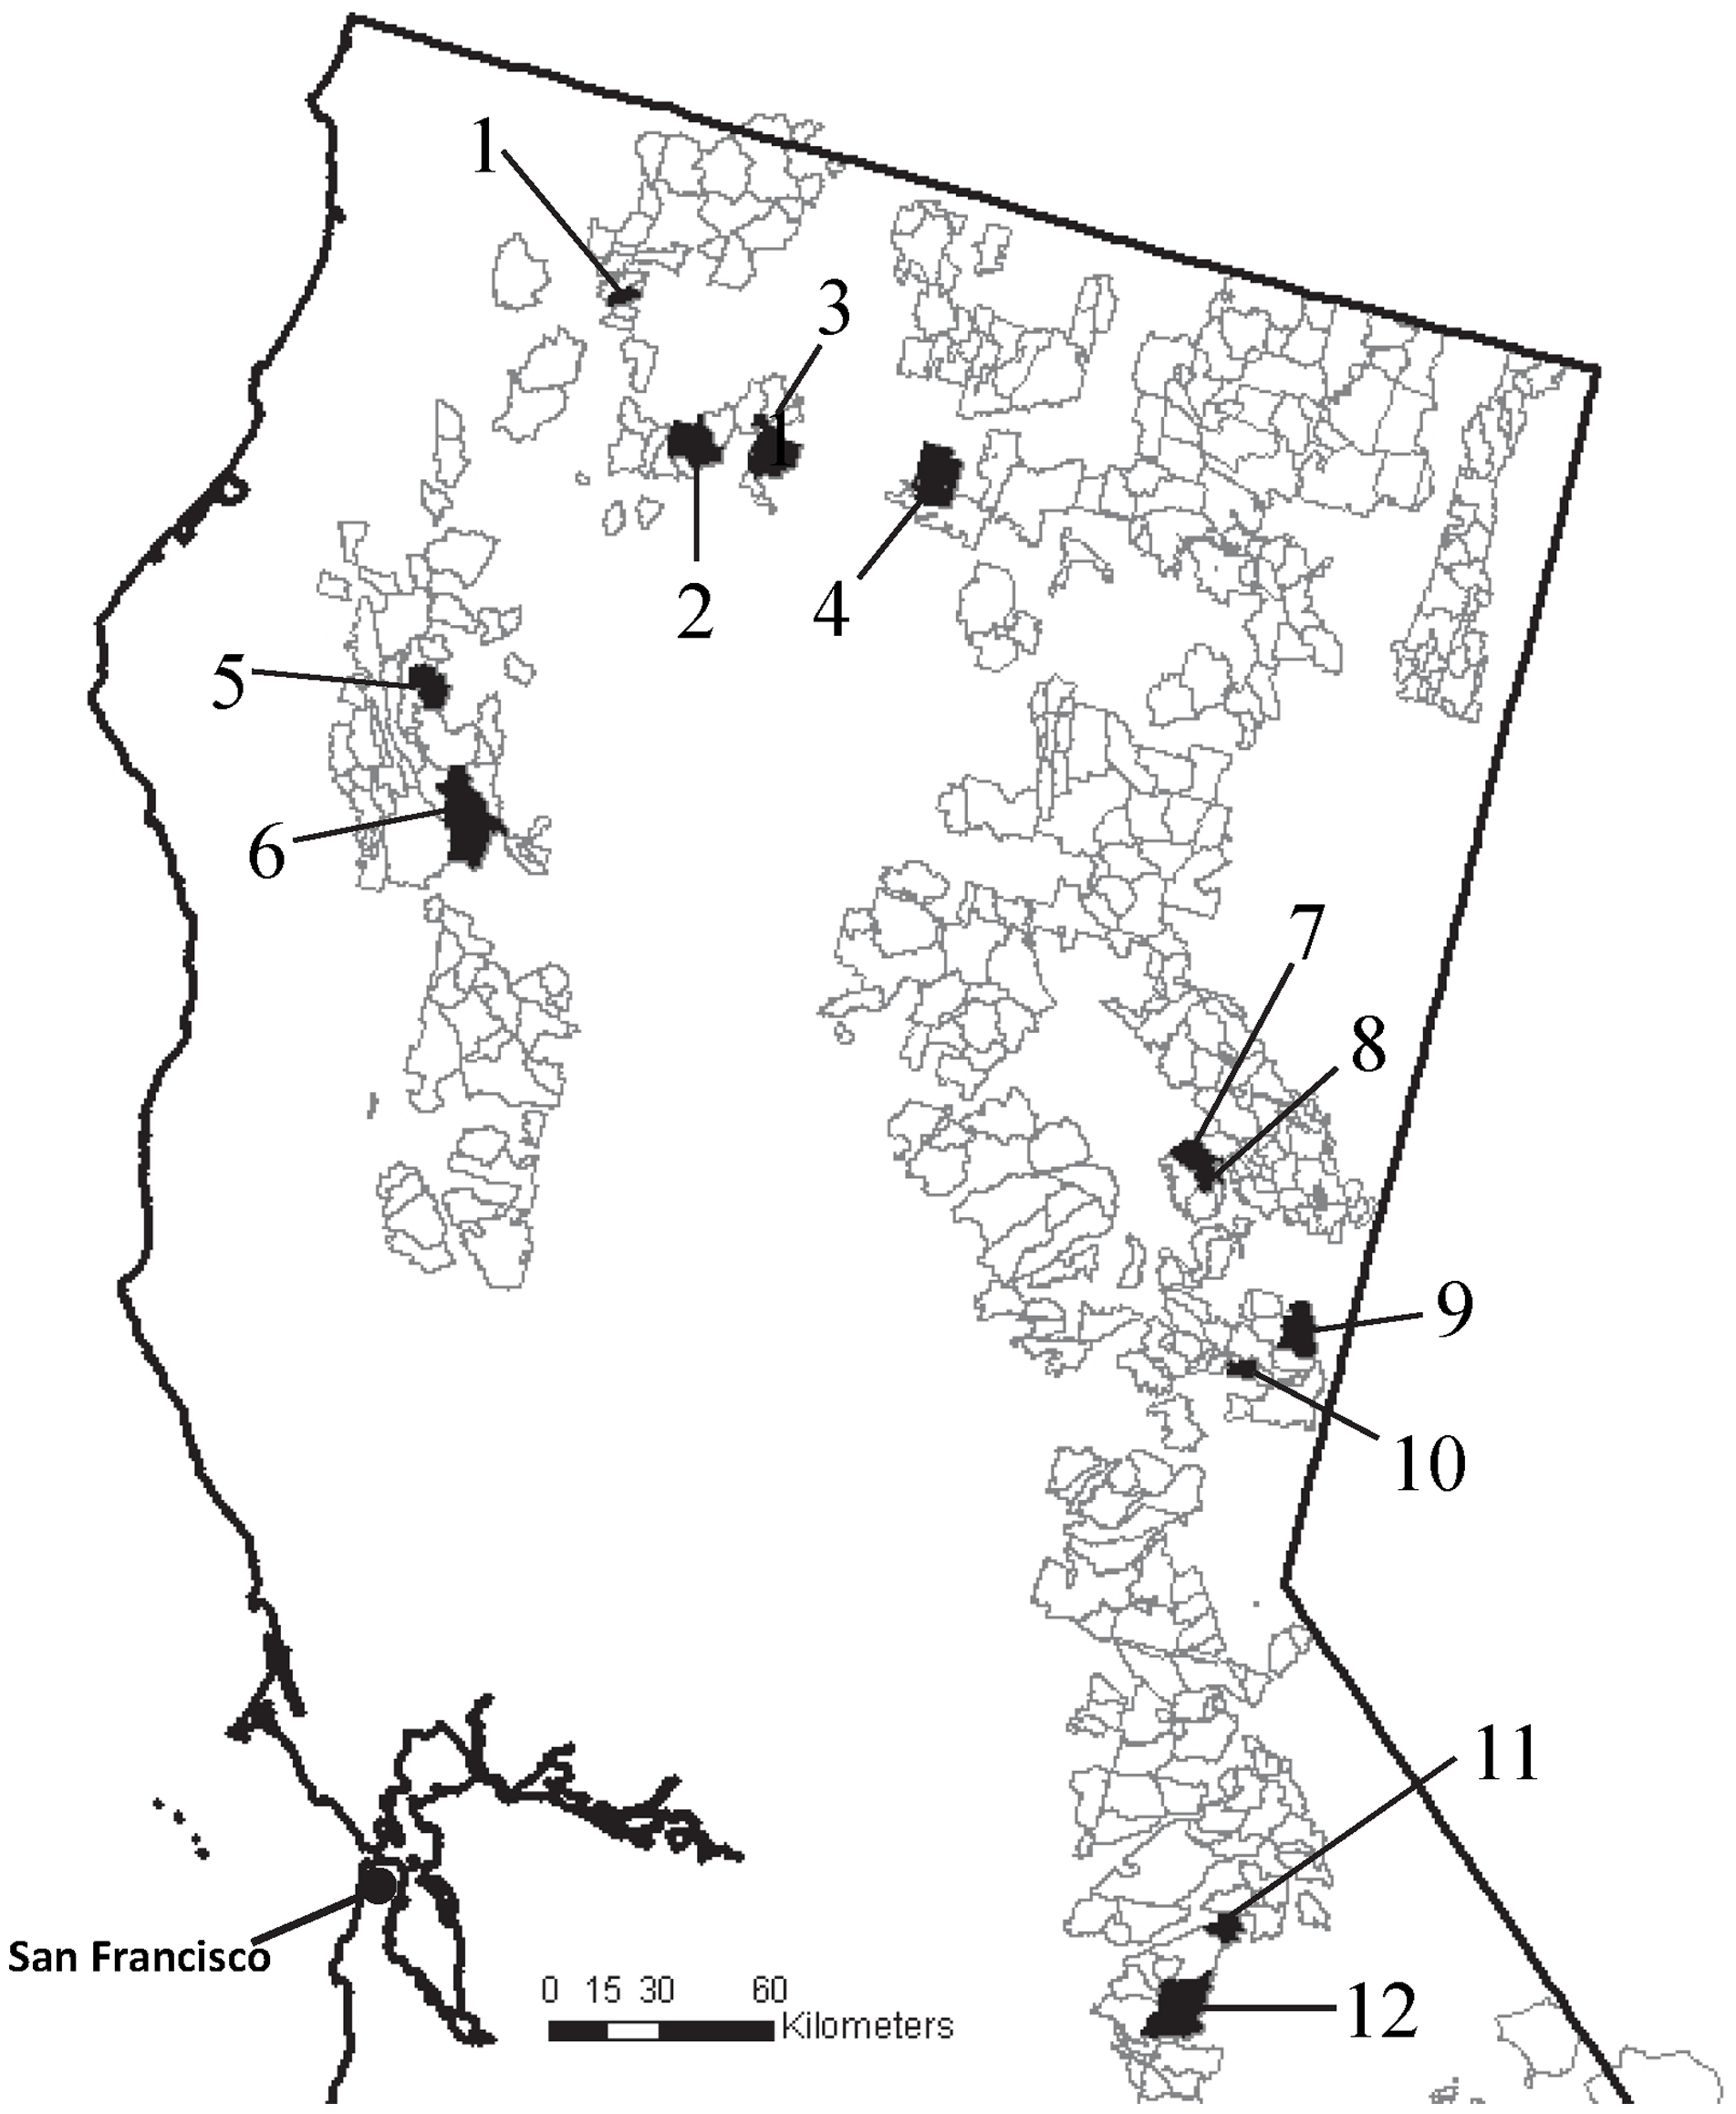 The 12 U S Forest Service Grazing Allotments Shaded Polygons In Northern California Enrolled In The Cross Sectional Longitudinal Study Of Stream Water